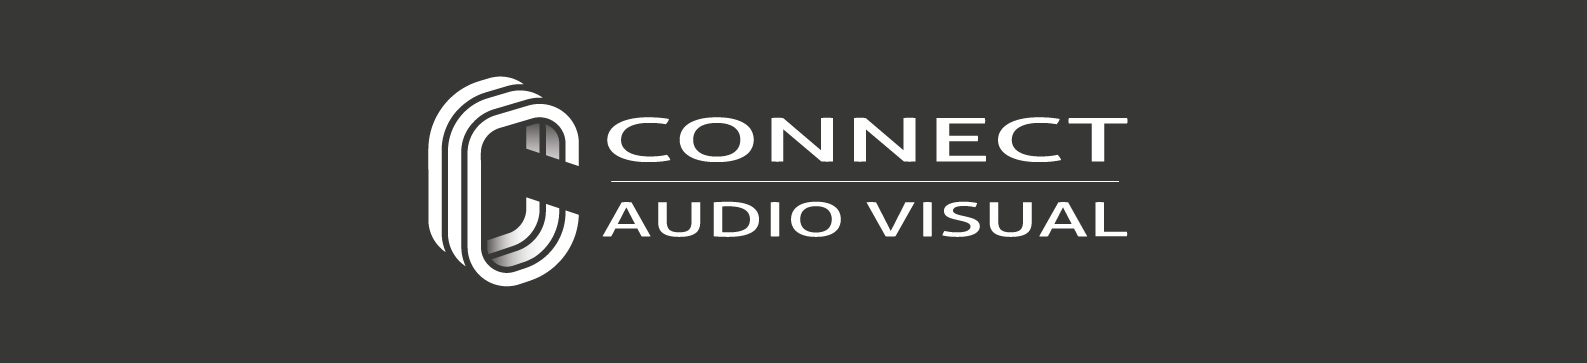 Connect Audio Visual